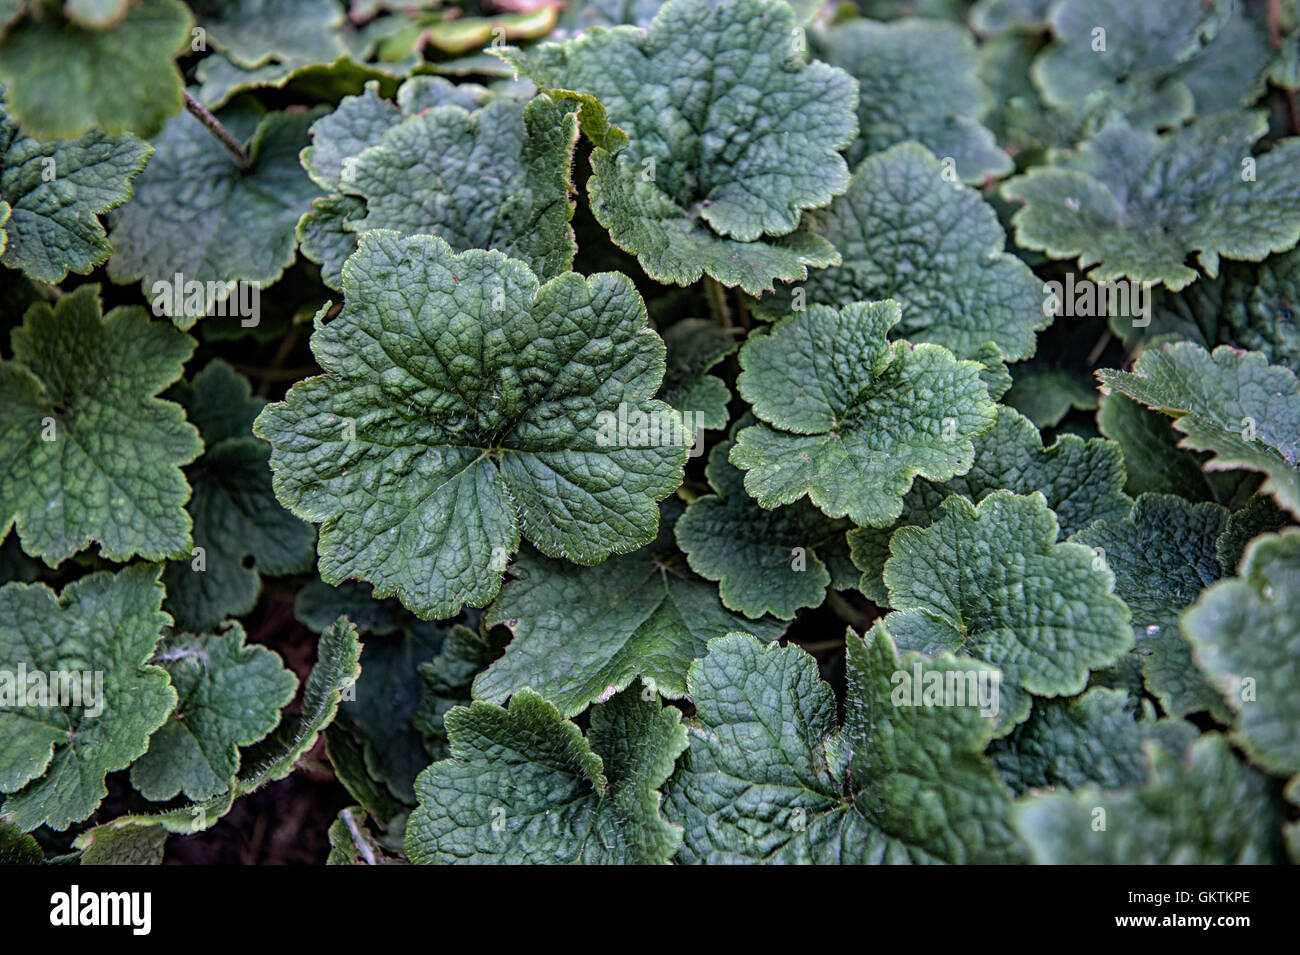 Tellima Grandiflora, clumping perennial plant with hairy and scalloped leaves. Green leaves background and wallpaper. - Stock Image